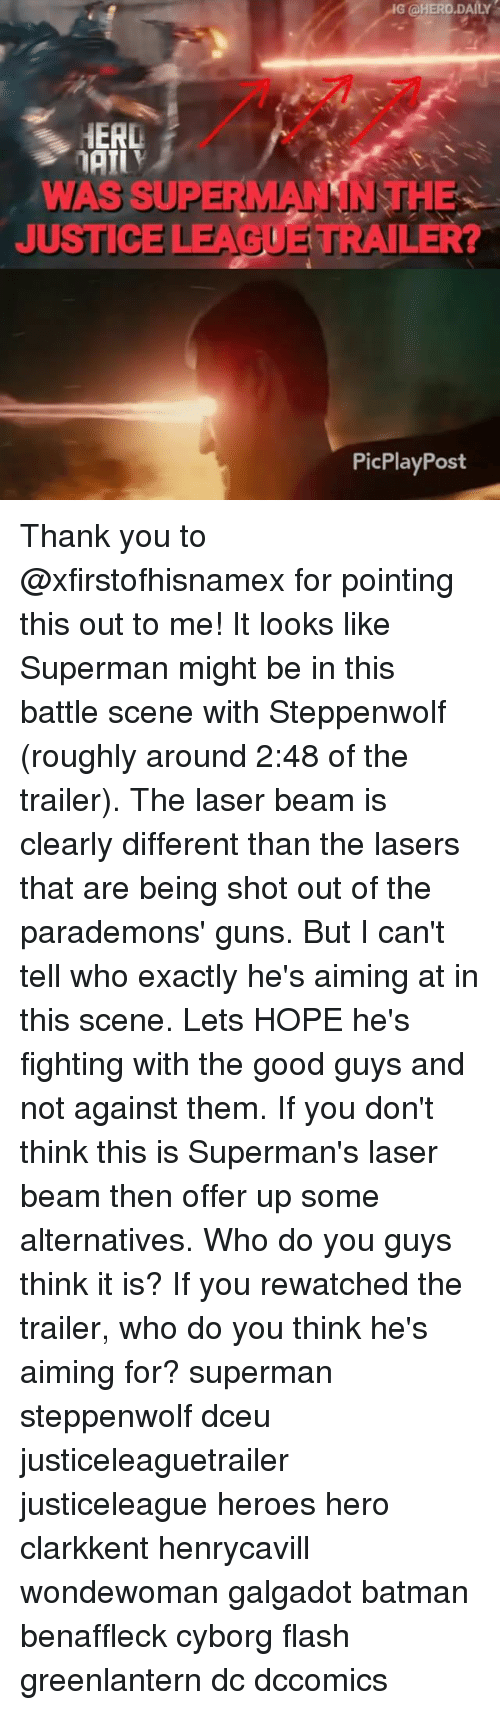 Batman, Guns, and Memes: G @HERO.DAILY  HERL  WAS SUPERMANSNTHE  JUSTICE LEAGUE TRAILER?  PicPlayPost Thank you to @xfirstofhisnamex for pointing this out to me! It looks like Superman might be in this battle scene with Steppenwolf (roughly around 2:48 of the trailer). The laser beam is clearly different than the lasers that are being shot out of the parademons' guns. But I can't tell who exactly he's aiming at in this scene. Lets HOPE he's fighting with the good guys and not against them. If you don't think this is Superman's laser beam then offer up some alternatives. Who do you guys think it is? If you rewatched the trailer, who do you think he's aiming for? superman steppenwolf dceu justiceleaguetrailer justiceleague heroes hero clarkkent henrycavill wondewoman galgadot batman benaffleck cyborg flash greenlantern dc dccomics